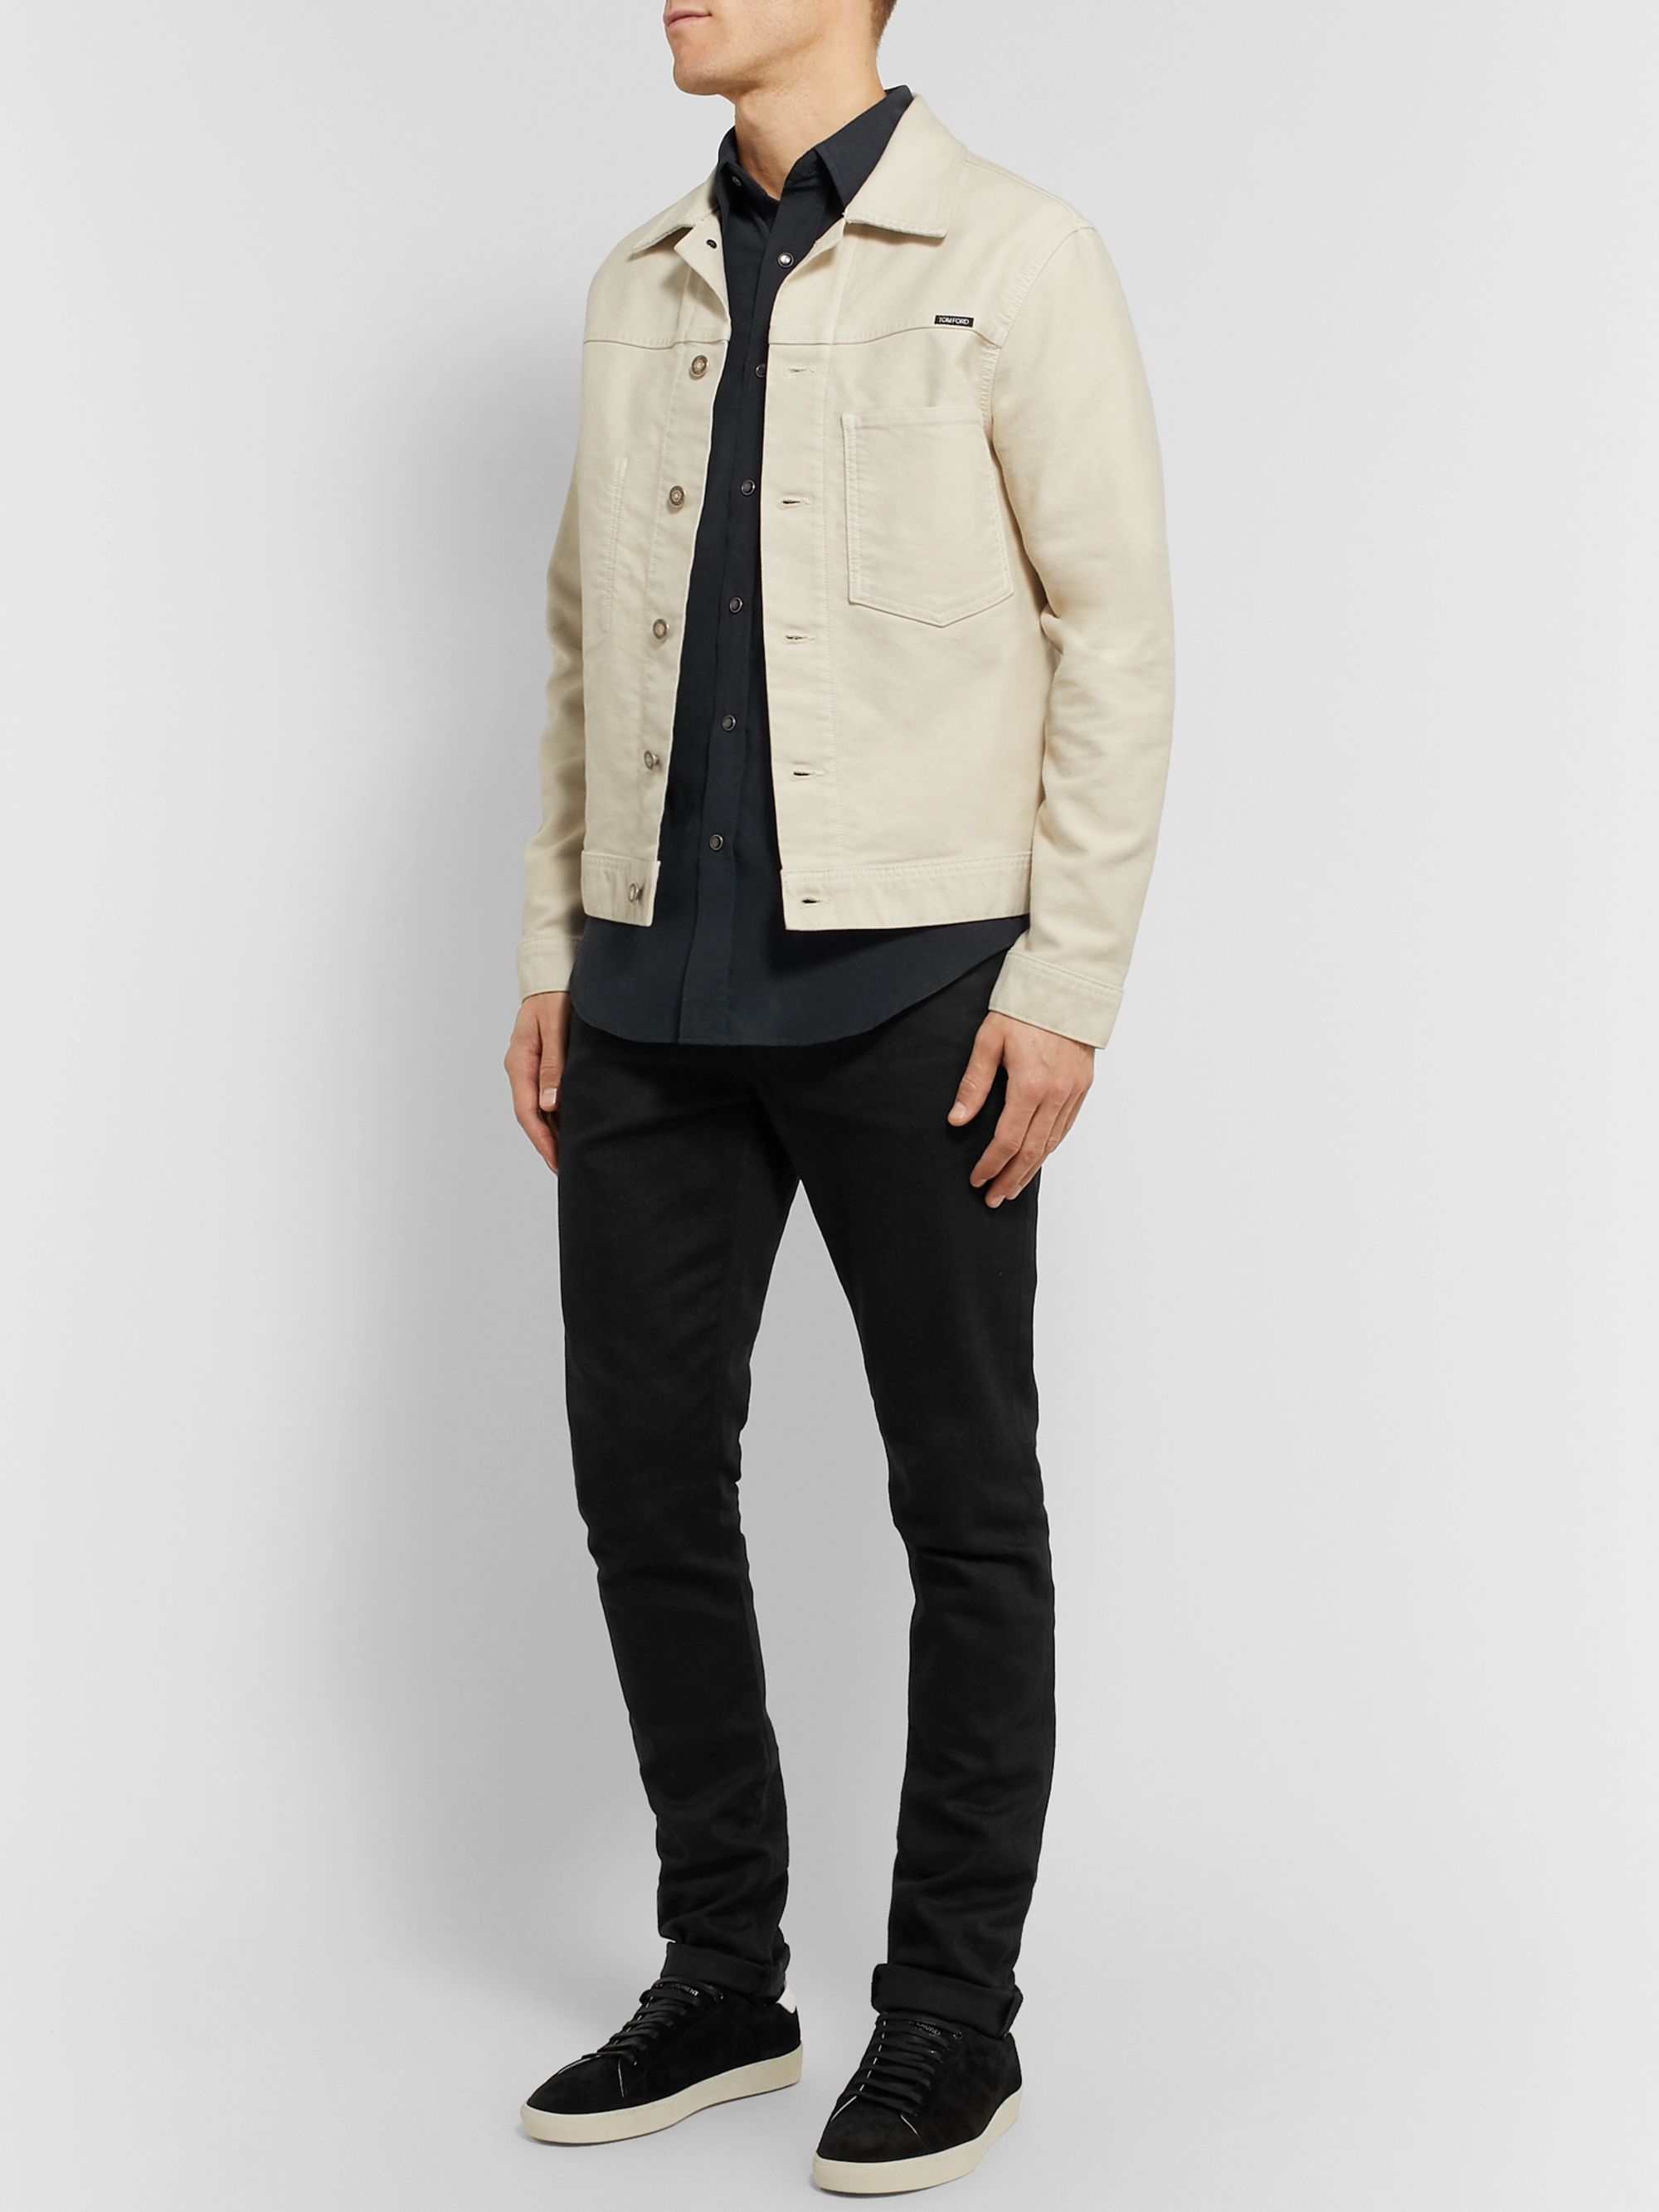 TOM FORD Slim-Fit Cotton-Corduroy Shirt